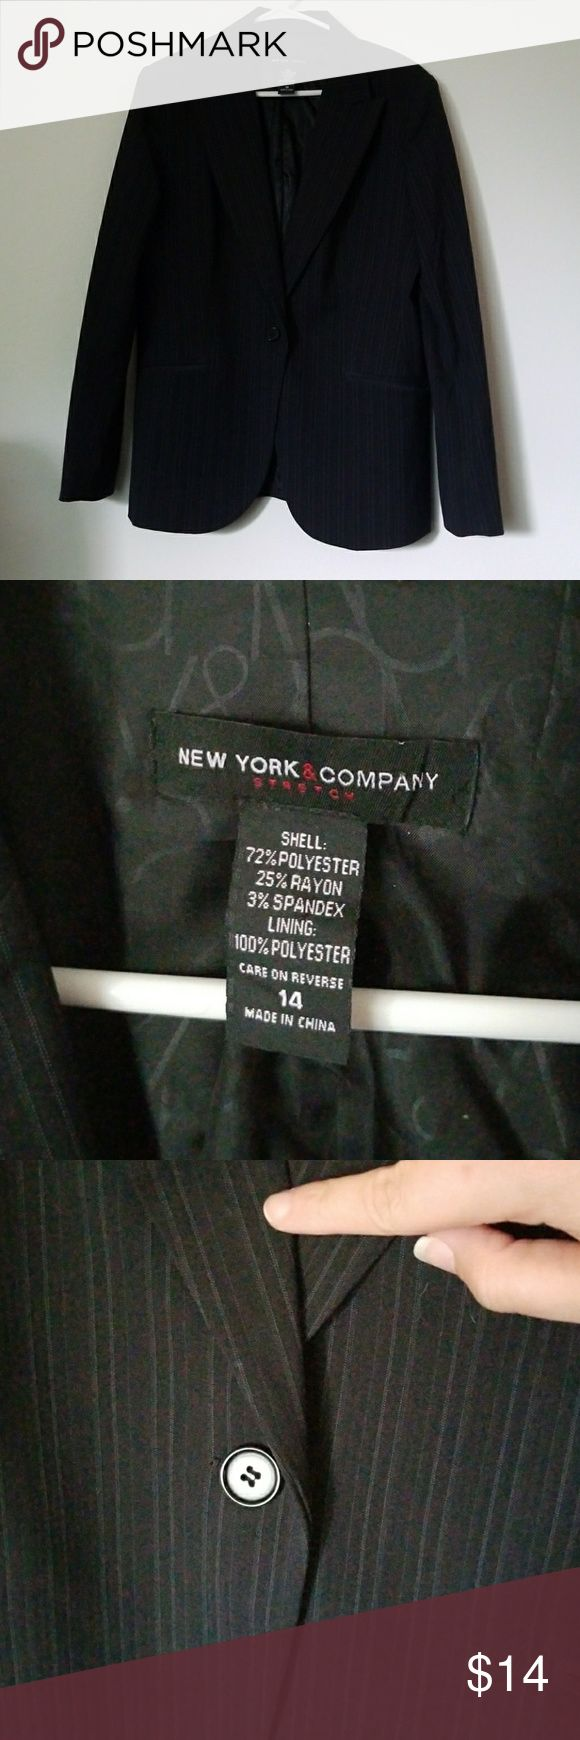 Slick Pinstriped Black Women's Blazer Gorgeous single button close blazer. Very professional. In fantastic condition. Worn a couple times. Very gently and lovingly cared for. Does have shoulder pads. New York & Company Jackets & Coats Blazers